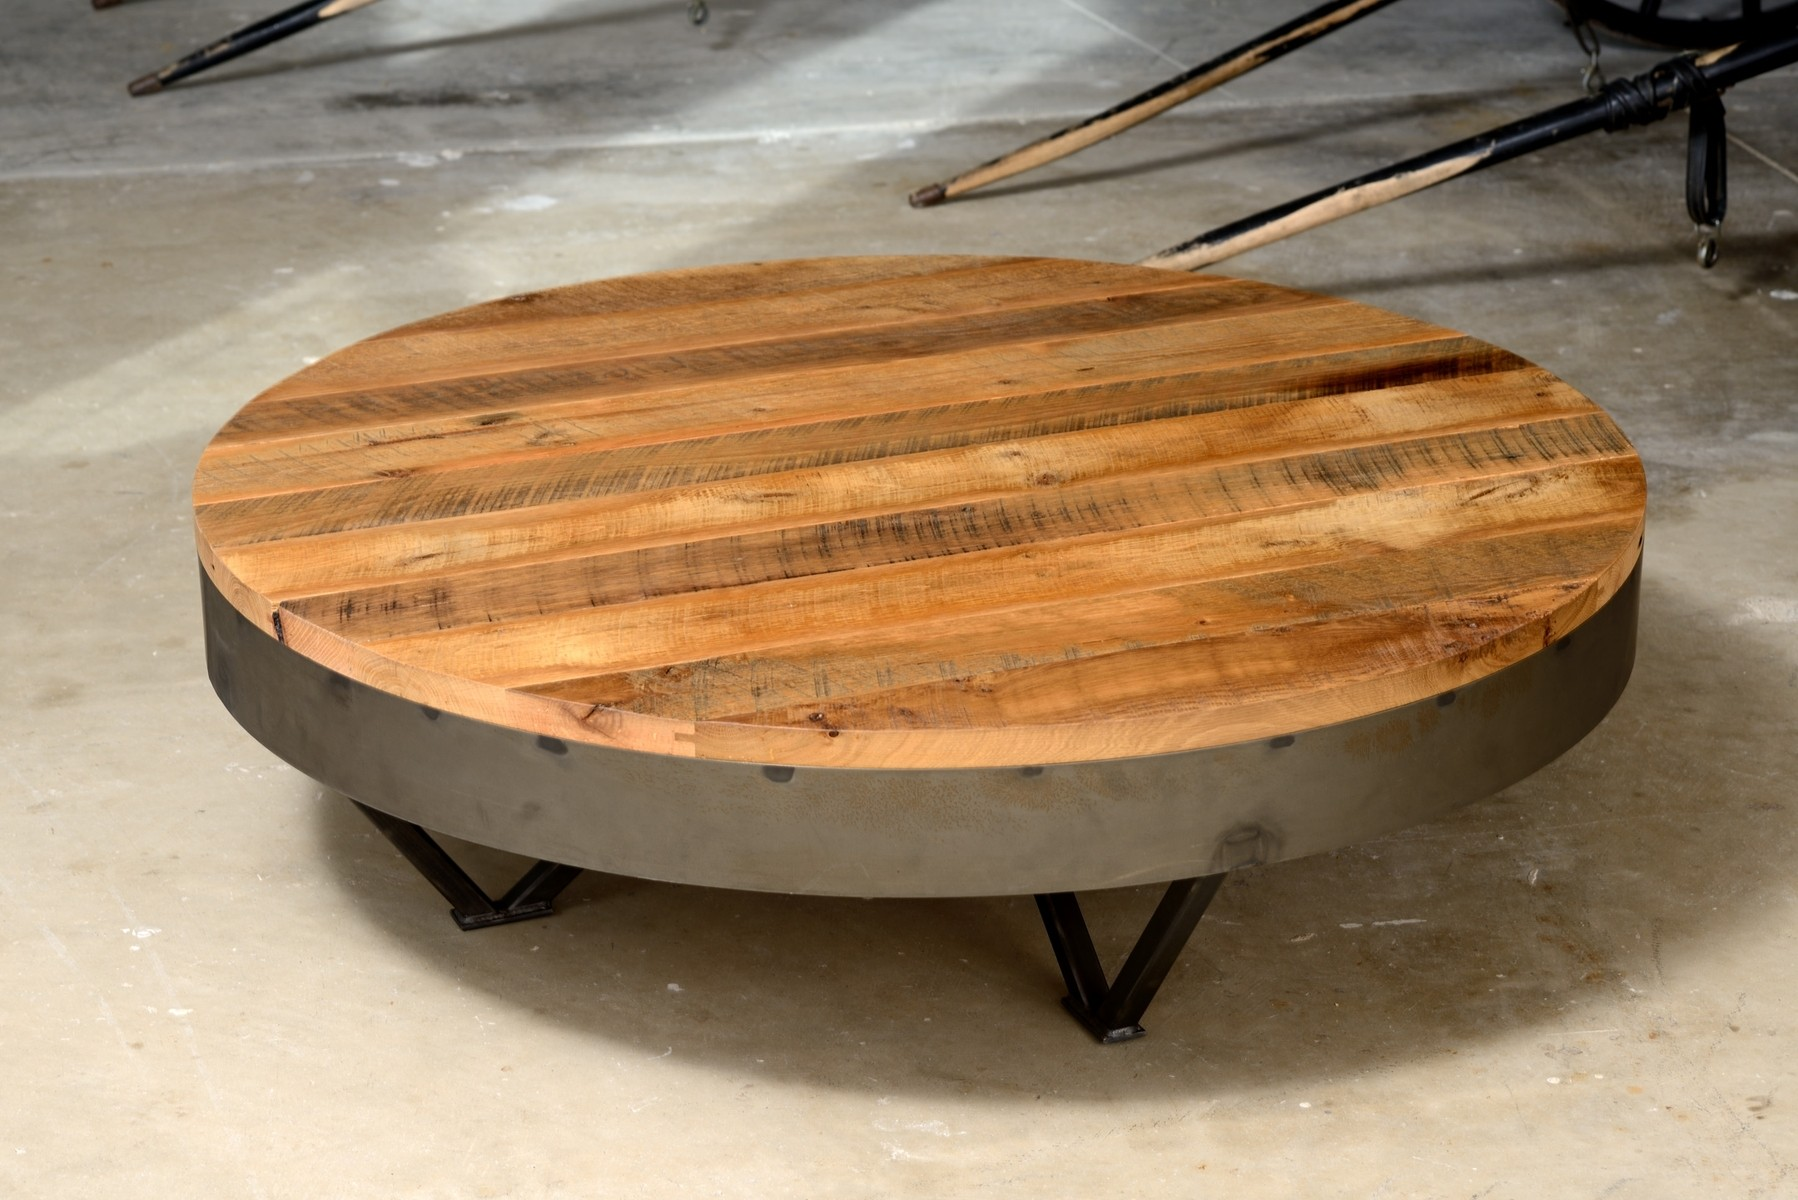 Low Round Wood Coffee Table Furniture Living Room Very Low Rustic Coffee Table With Wrought Iron Pedestal Base Round Metal And Wood Coffee Table (View 6 of 10)